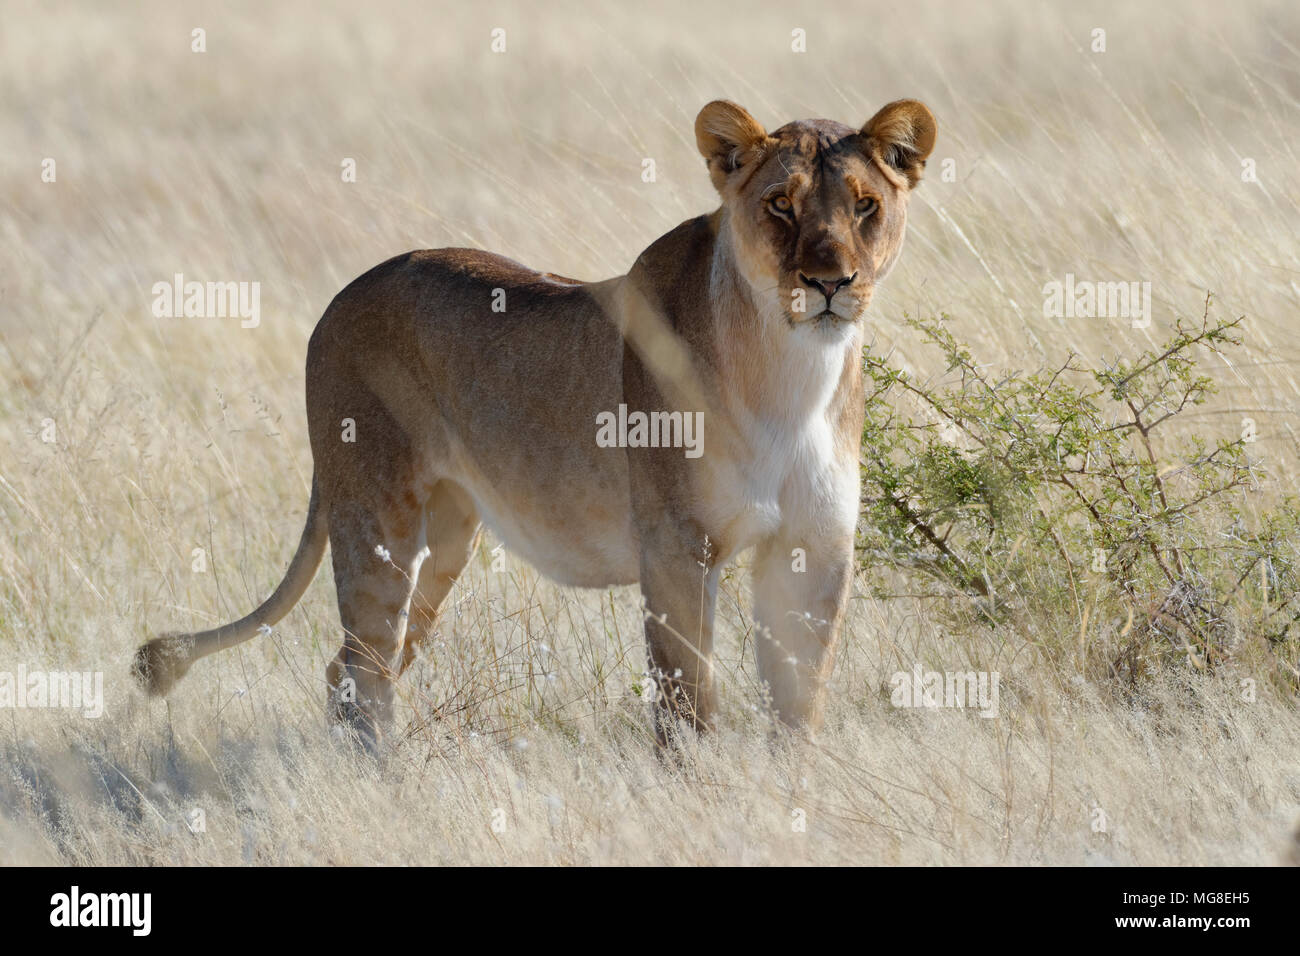 Lioness (Panthera leo) standing in dry grass, alert, Etosha National Park, Namibia - Stock Image